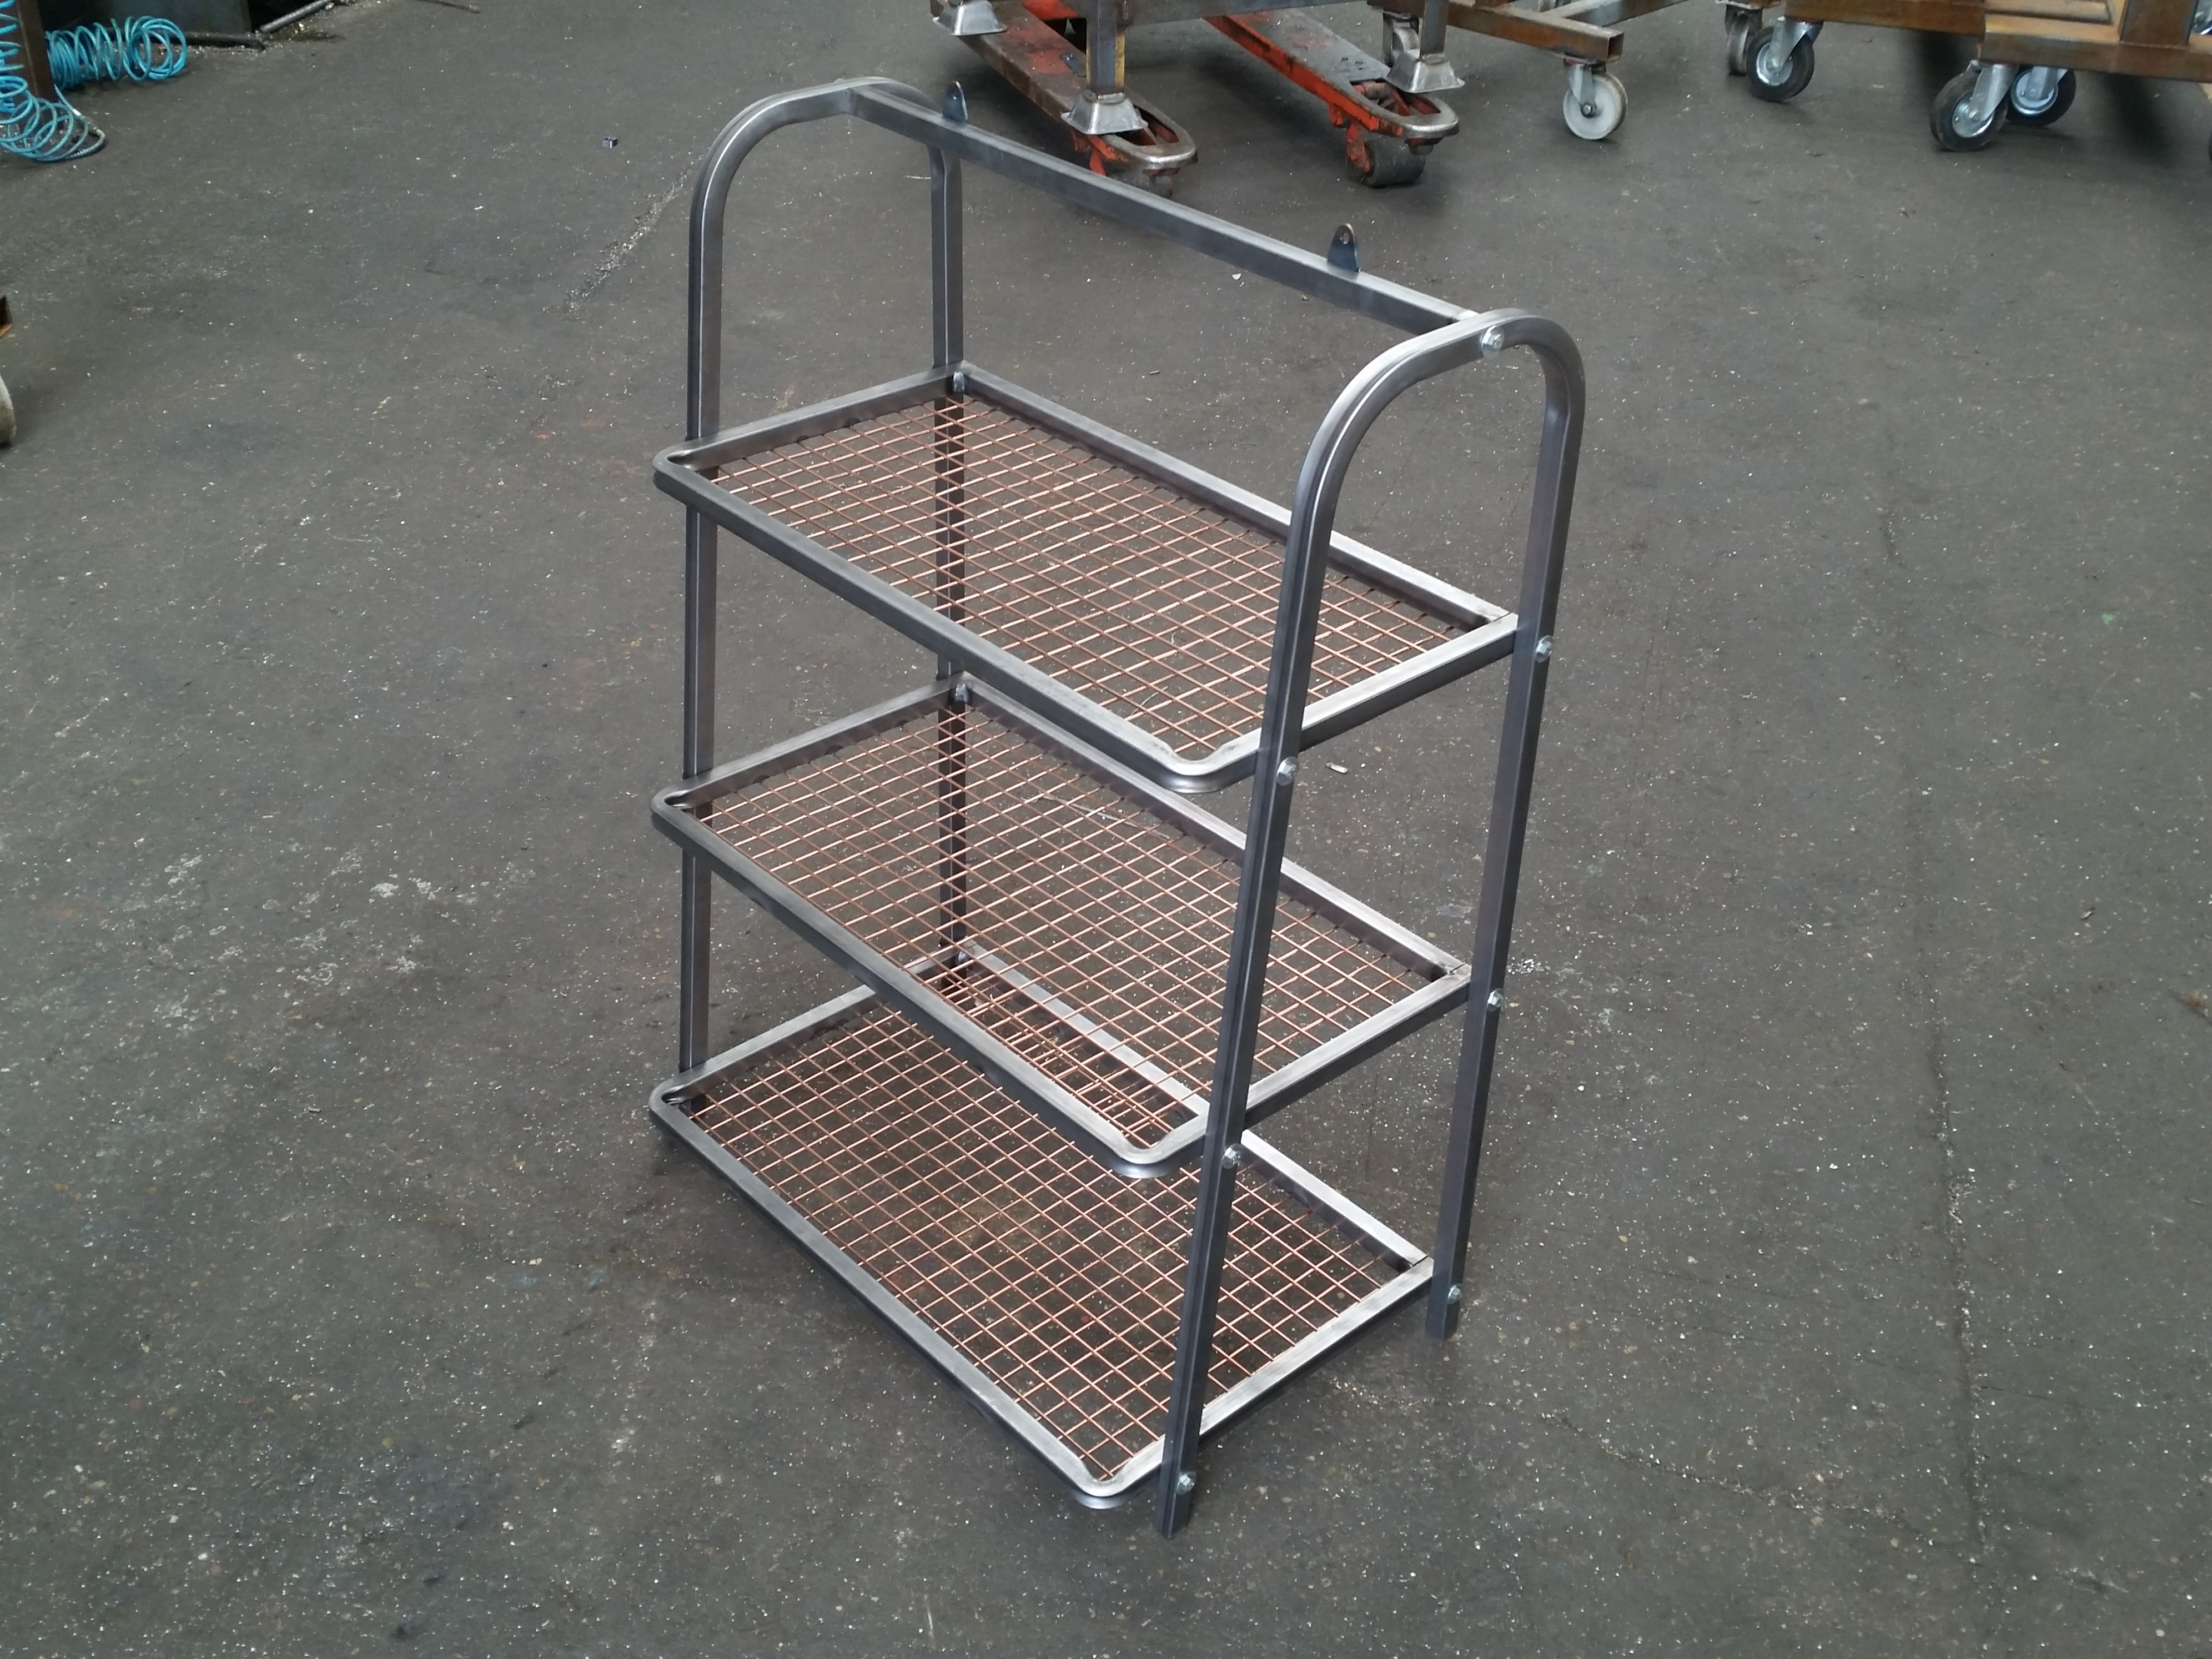 Mild steel fabrication direct fabrications for Fabrication stand